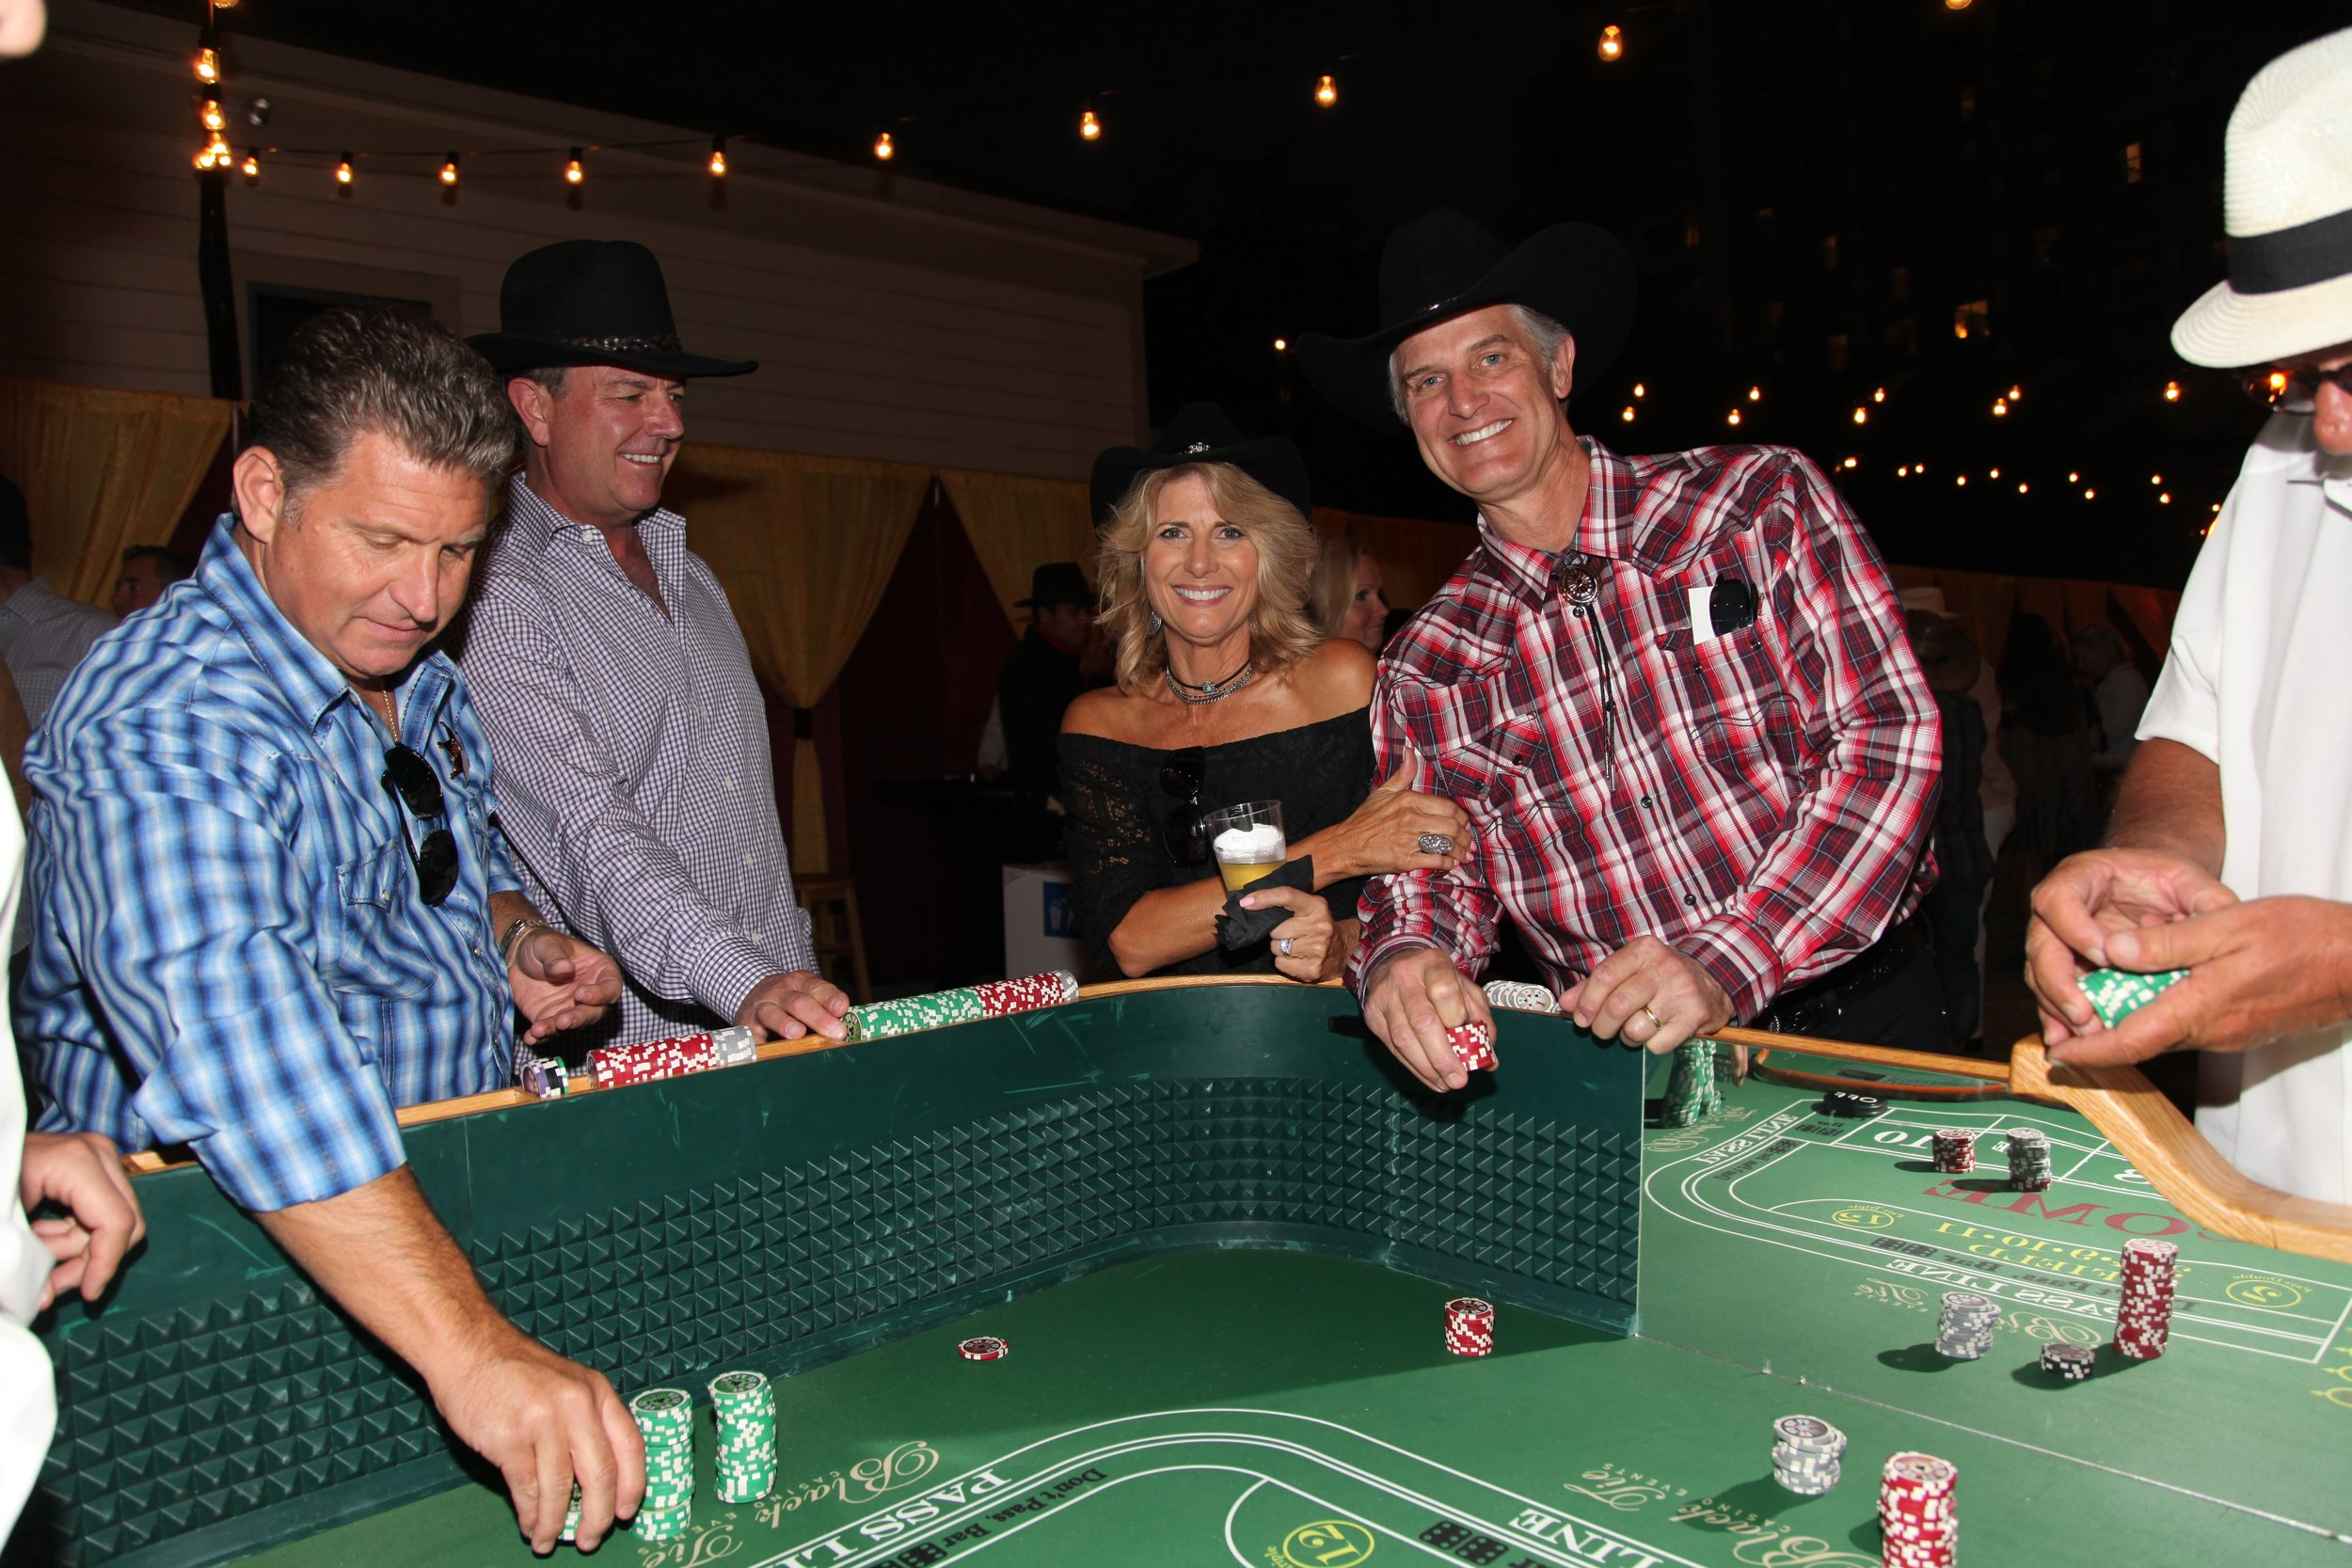 craps casino party in little italy-min.JPG